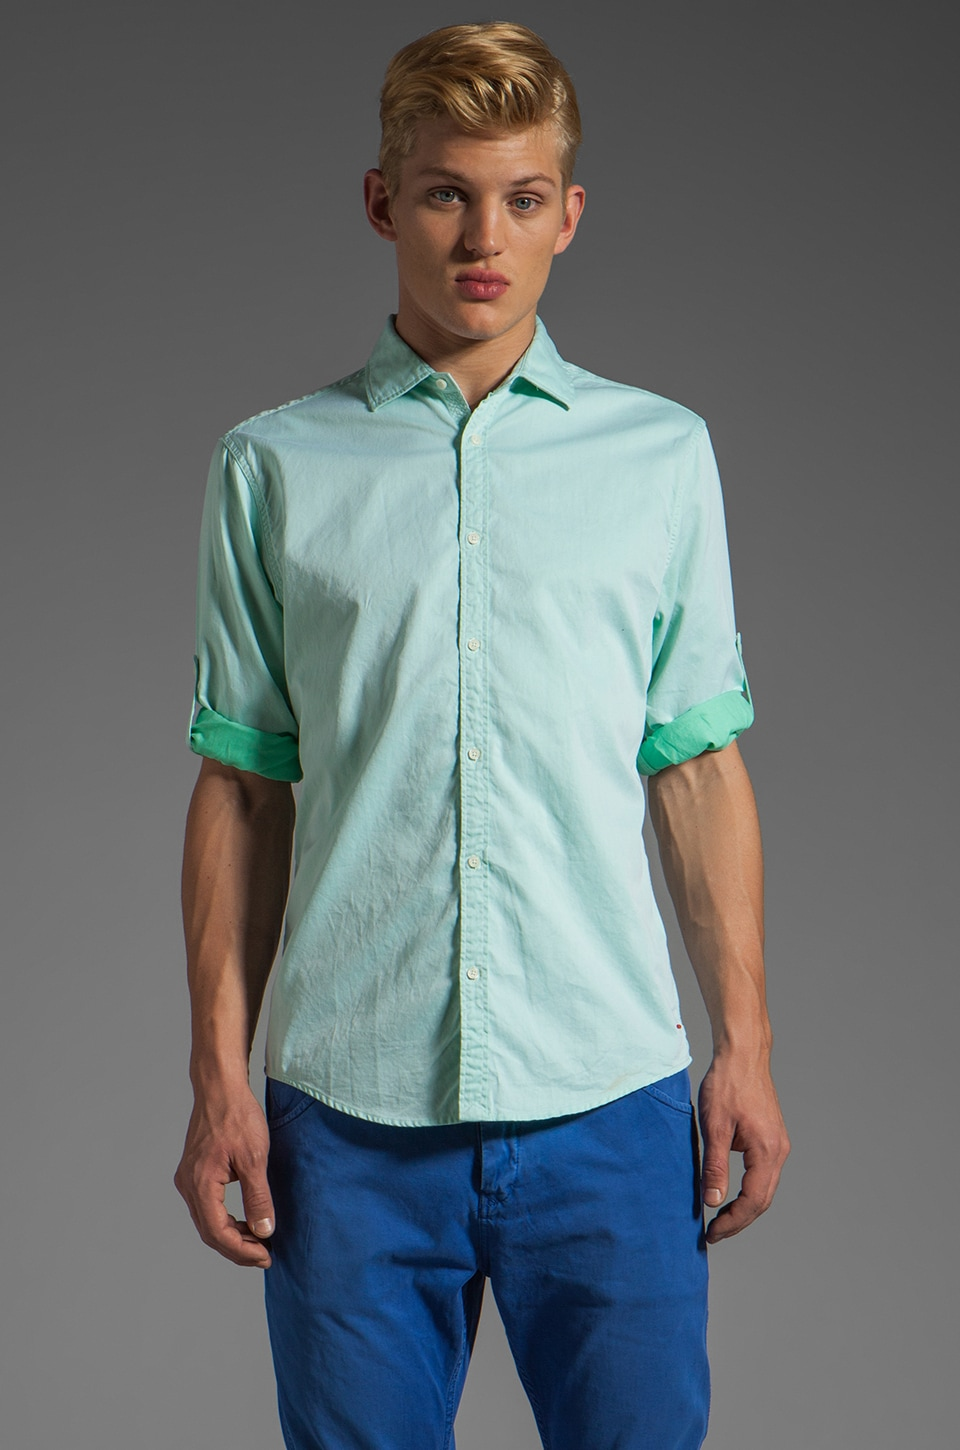 Scotch & Soda Oxford Shirt in Mint